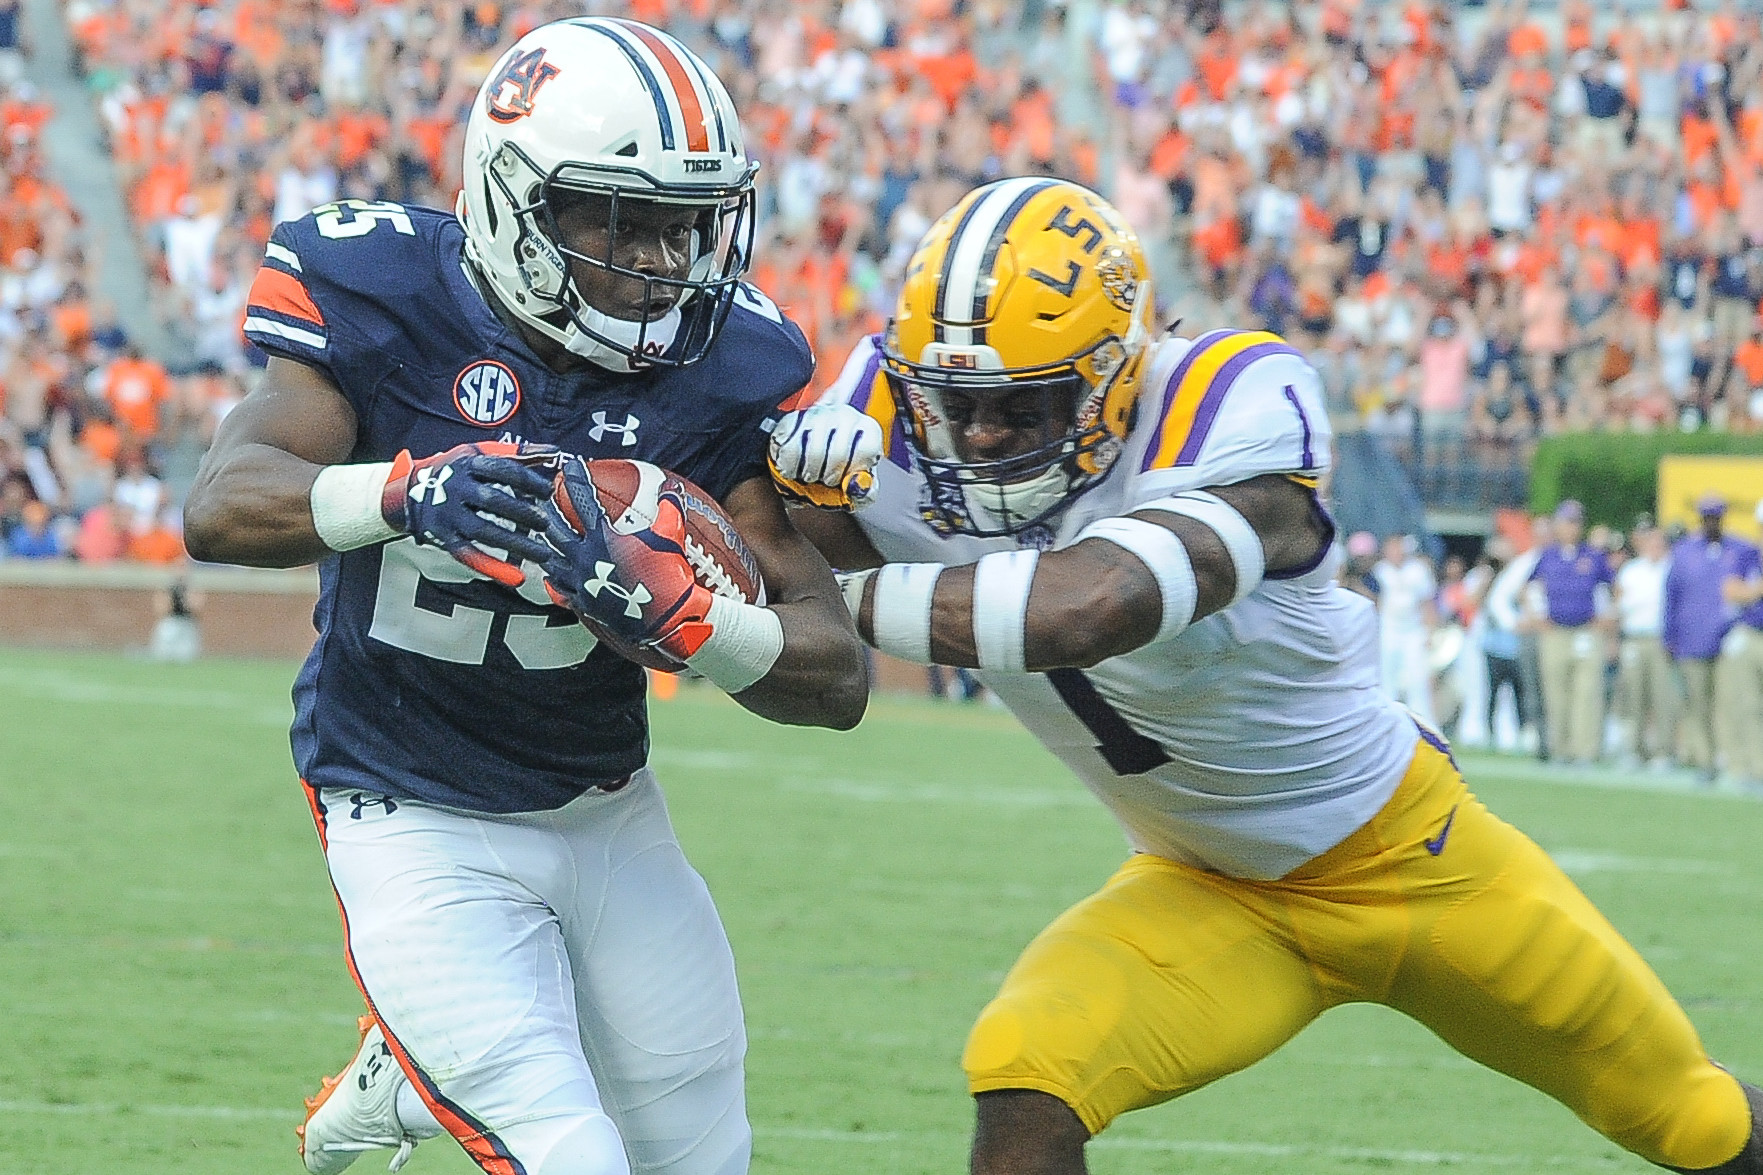 Auburn Tigers running back Shaun Shivers (25) scores in front of LSU Tigers cornerback Kelvin Joseph (1) during the first half of Saturday's game, at Jordan Hare Stadium in Auburn. (Contributed by Jeff Johnsey)